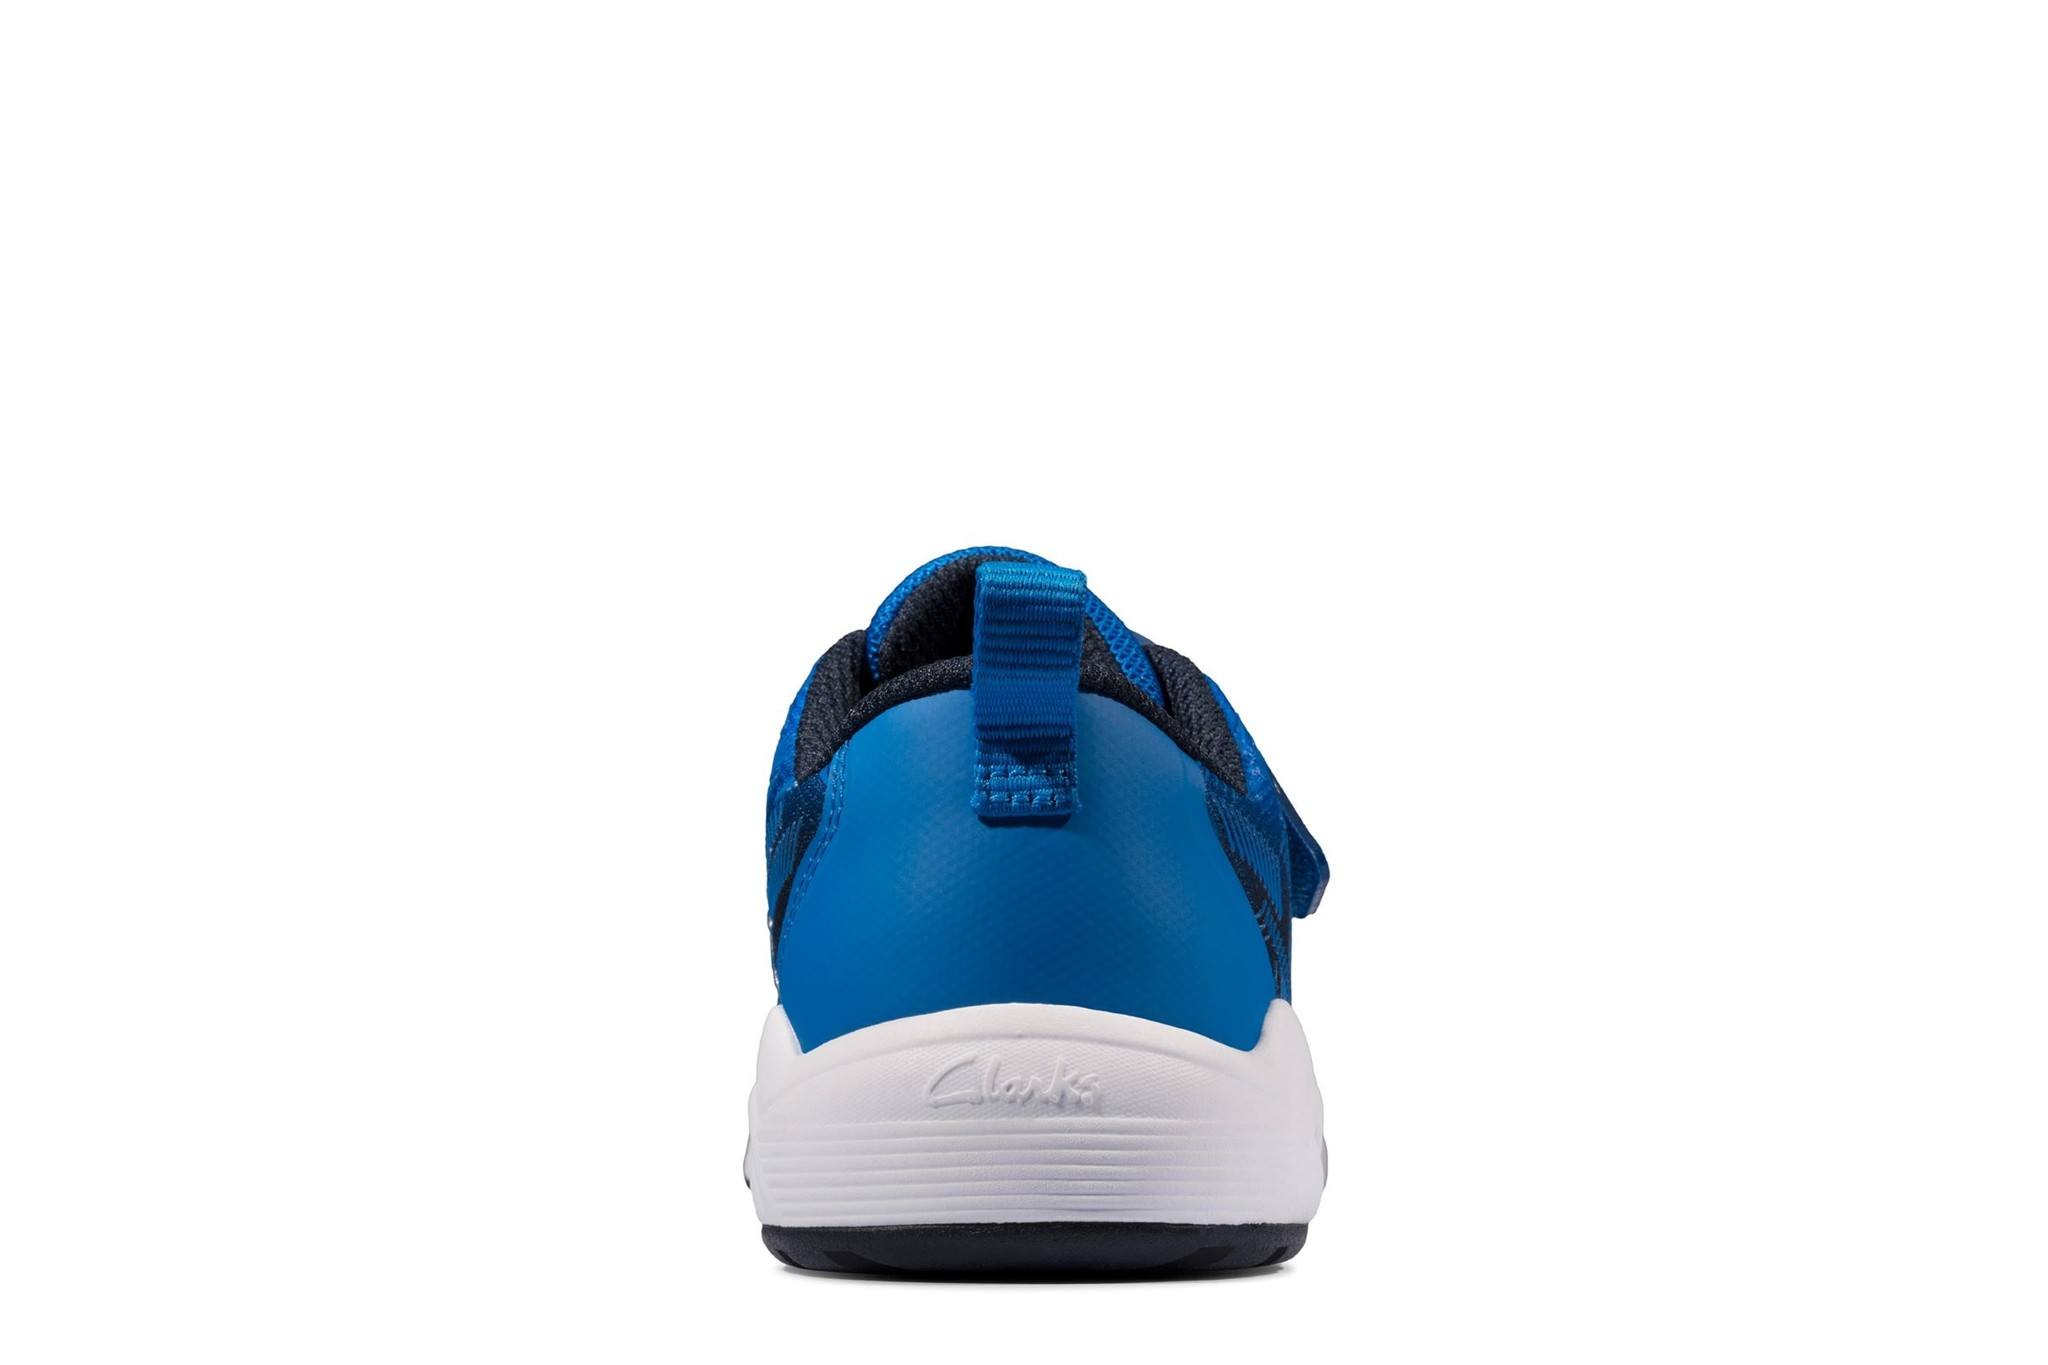 Clarks Aeon Pace Navy Blue Youth